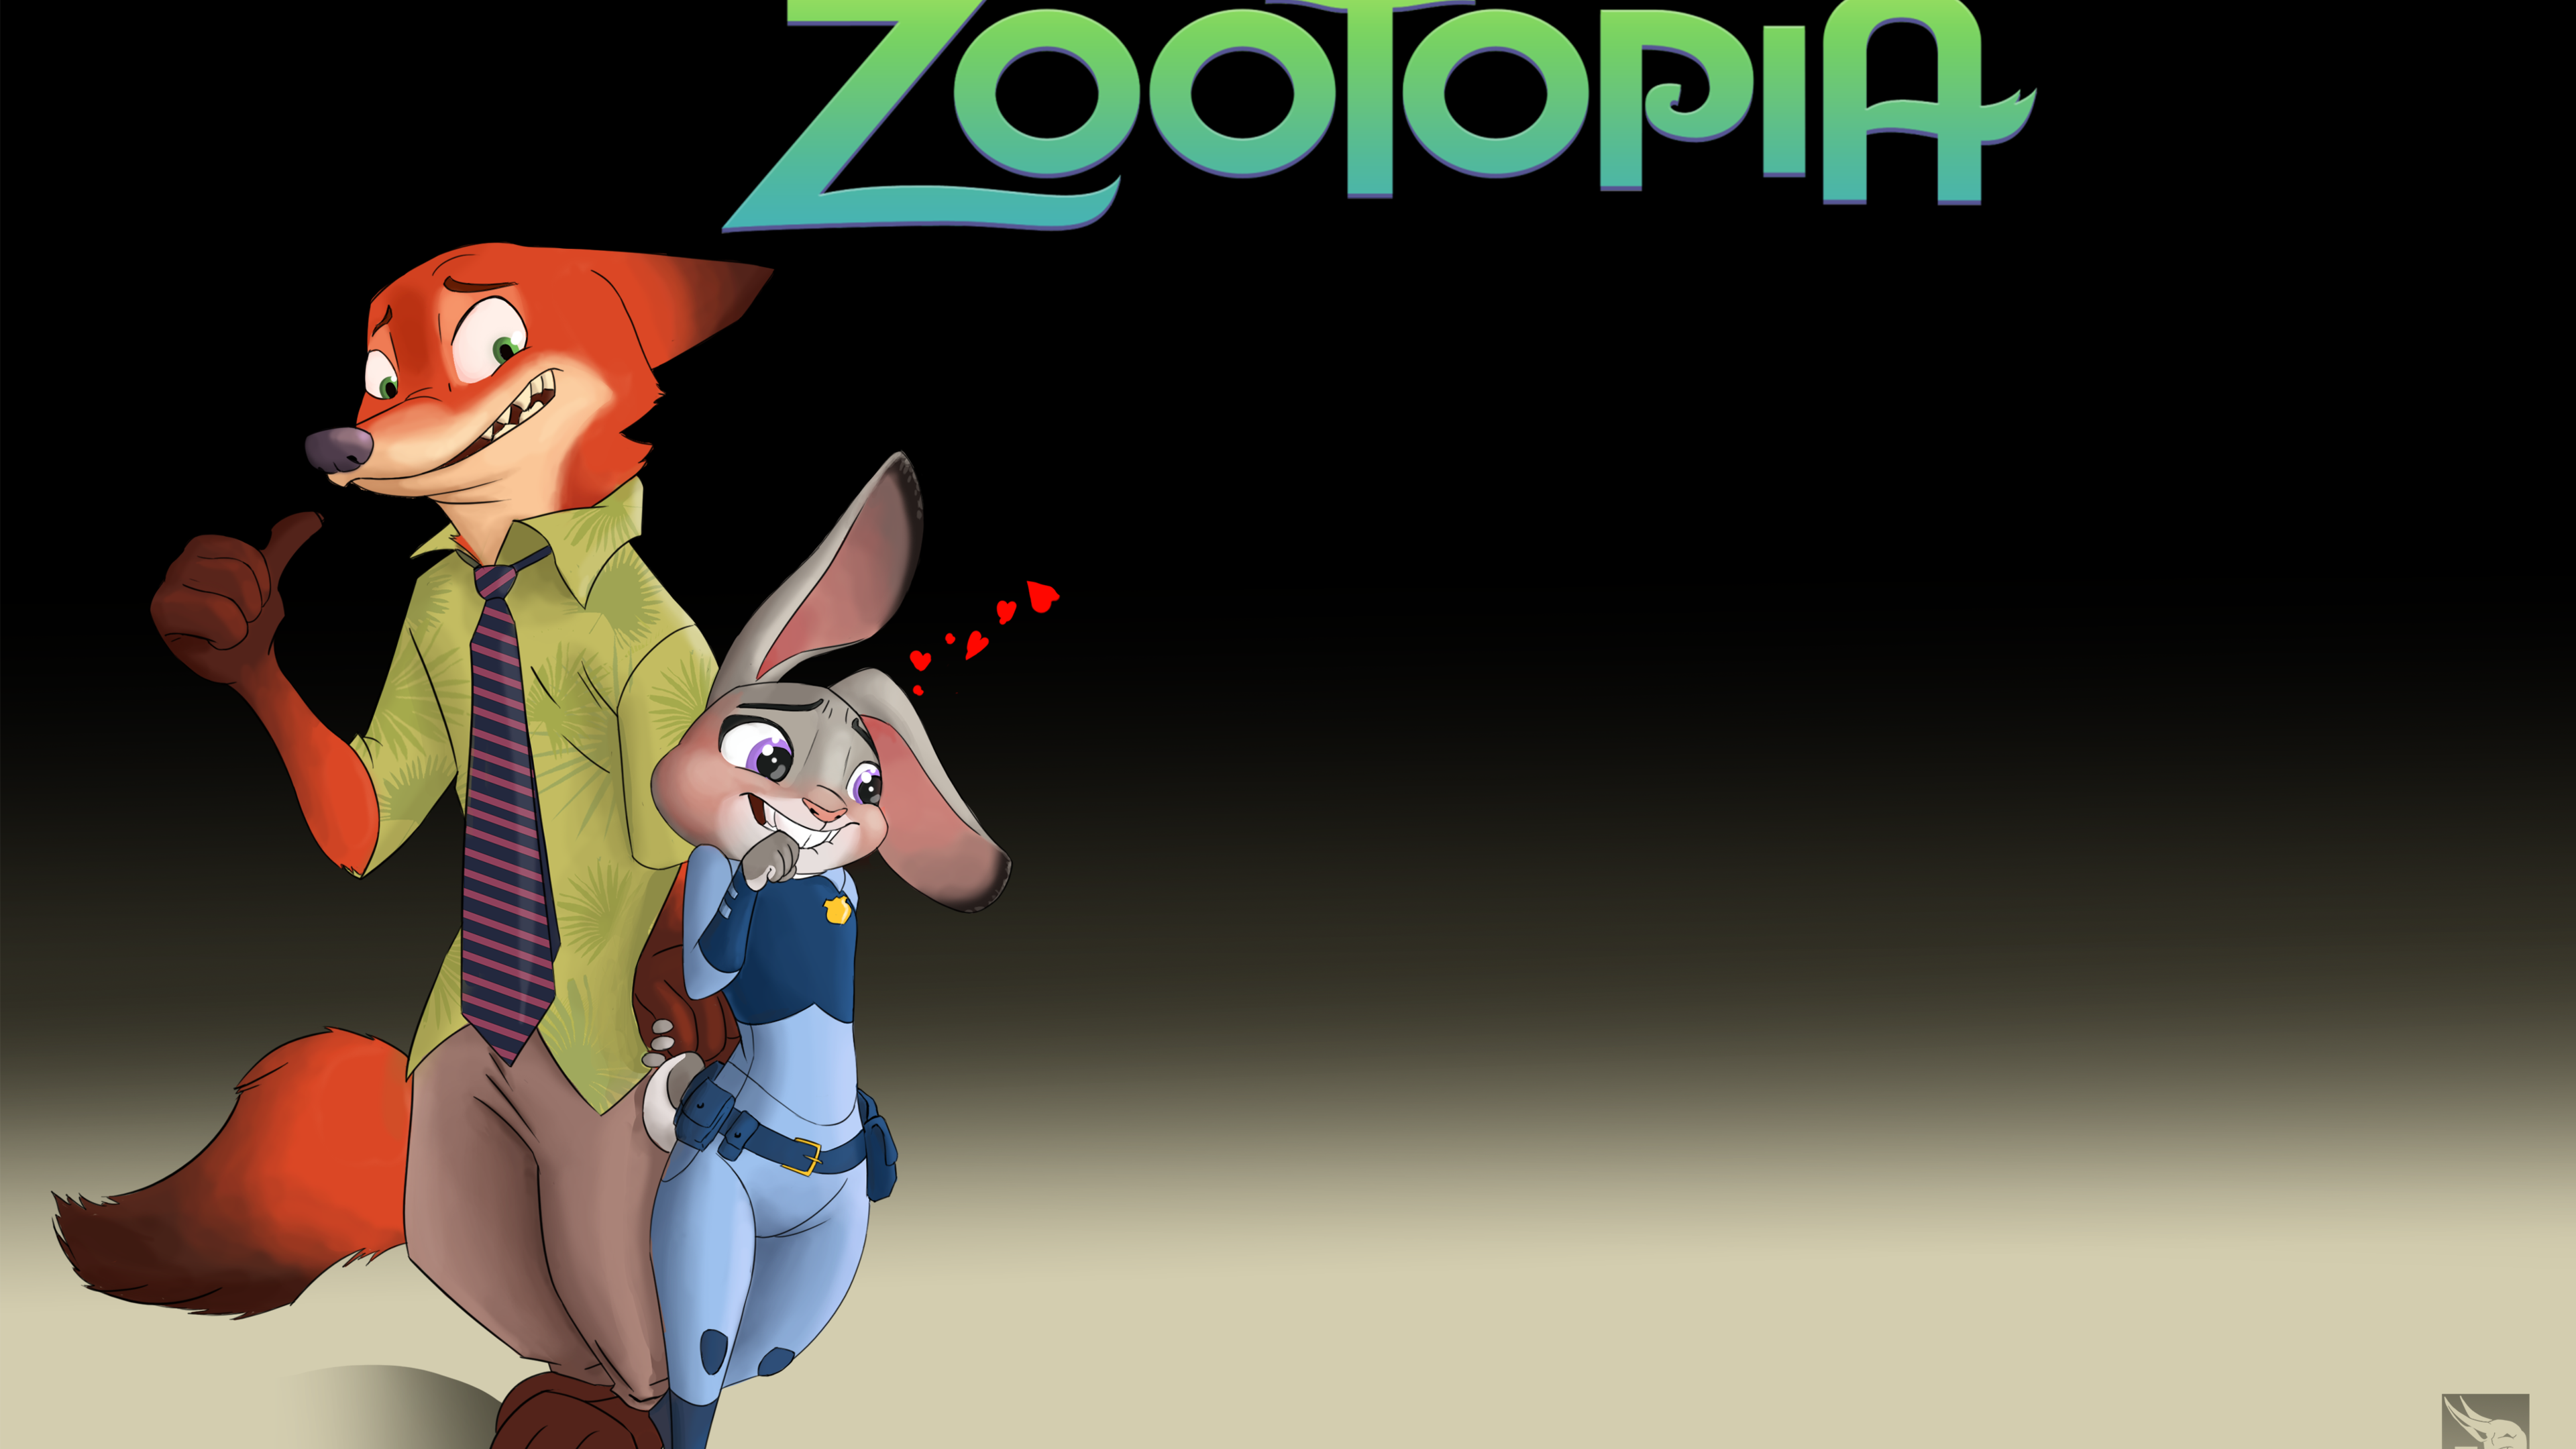 zootopia movie poster hd movies 4k wallpapers images